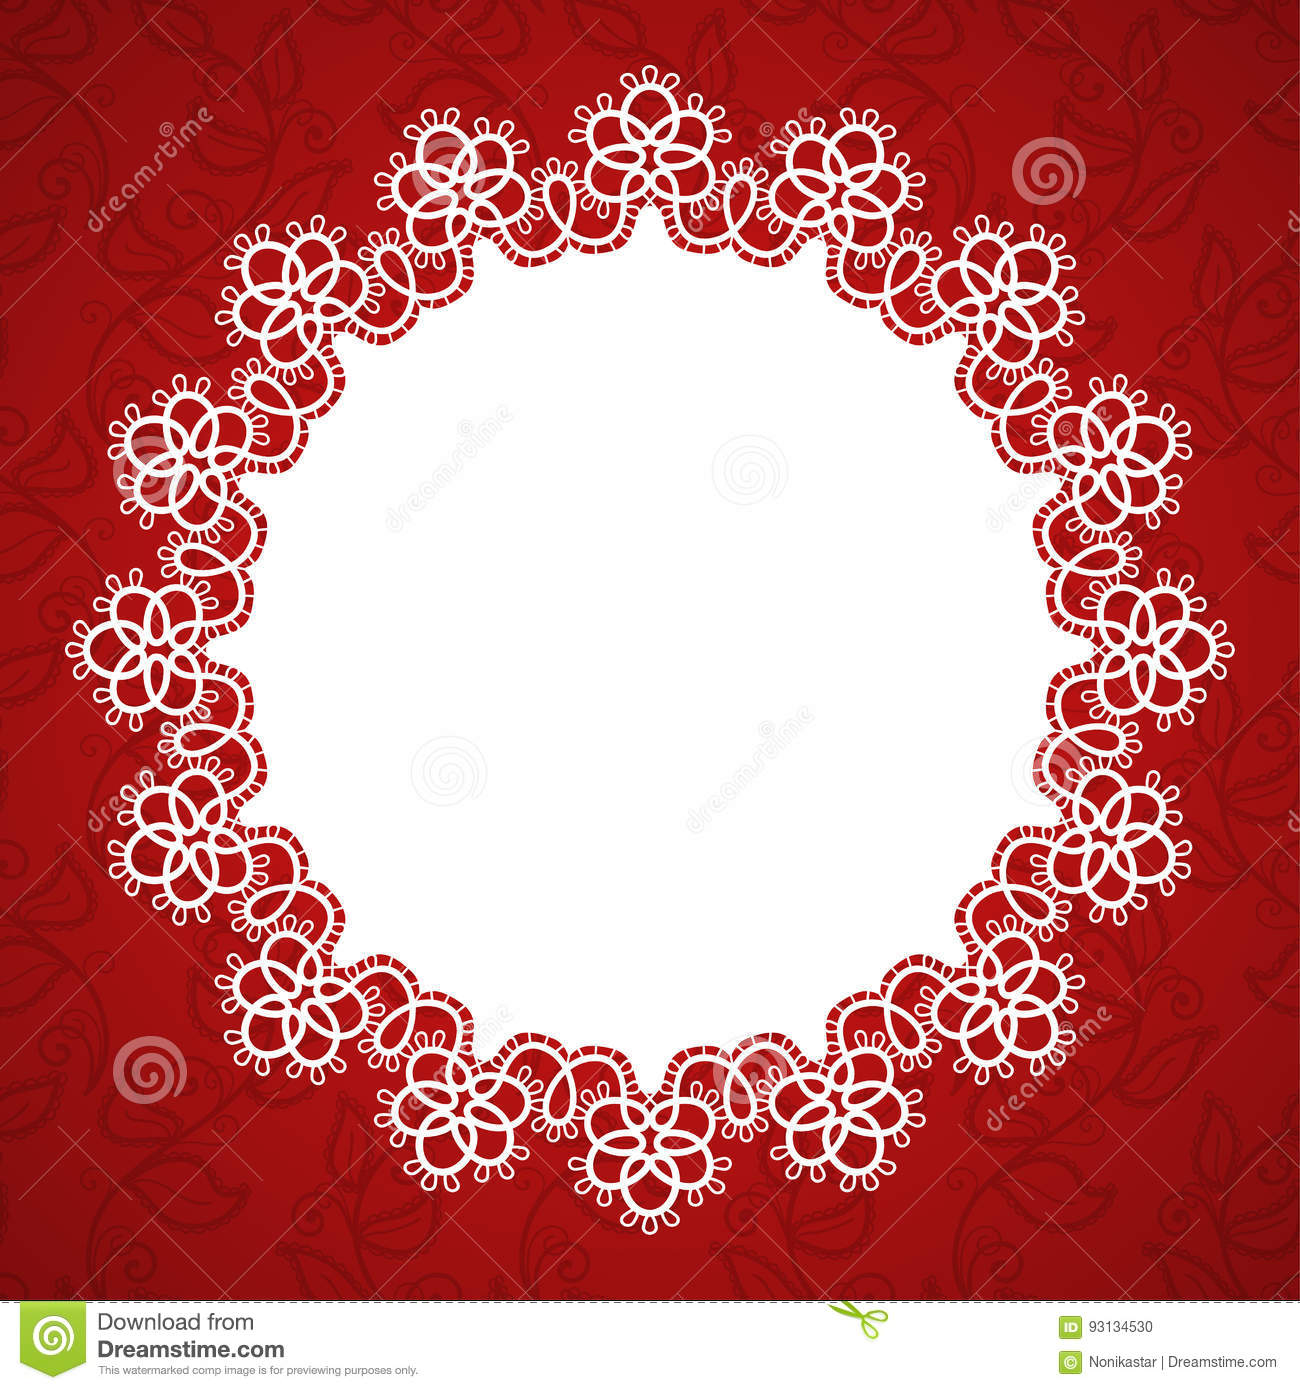 Lace round frame stock vector. Illustration of doily - 93134530